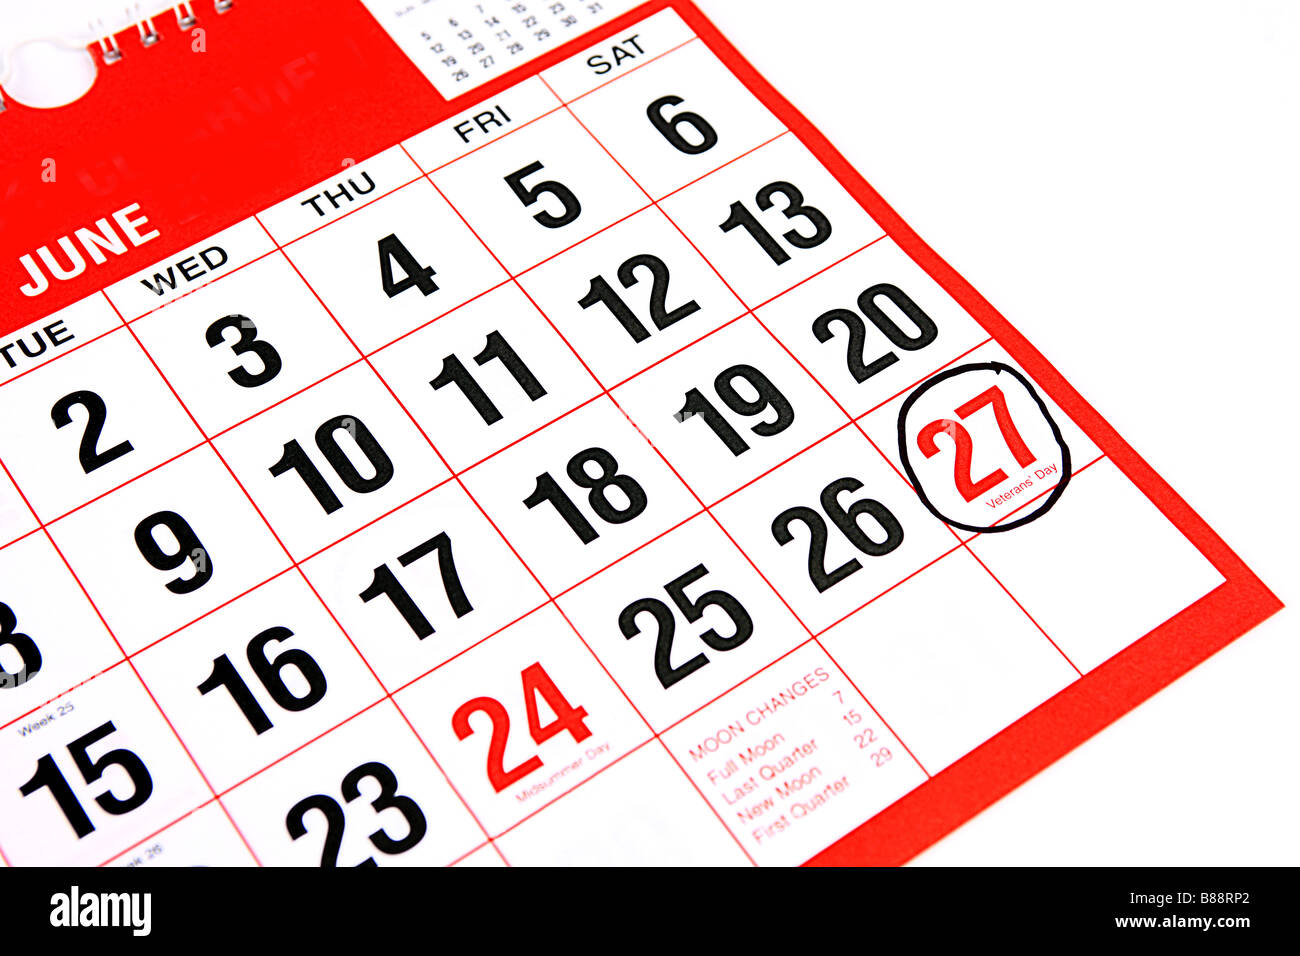 Calendar at the month of June with a black ring around the 27th Veterans day - Stock Image